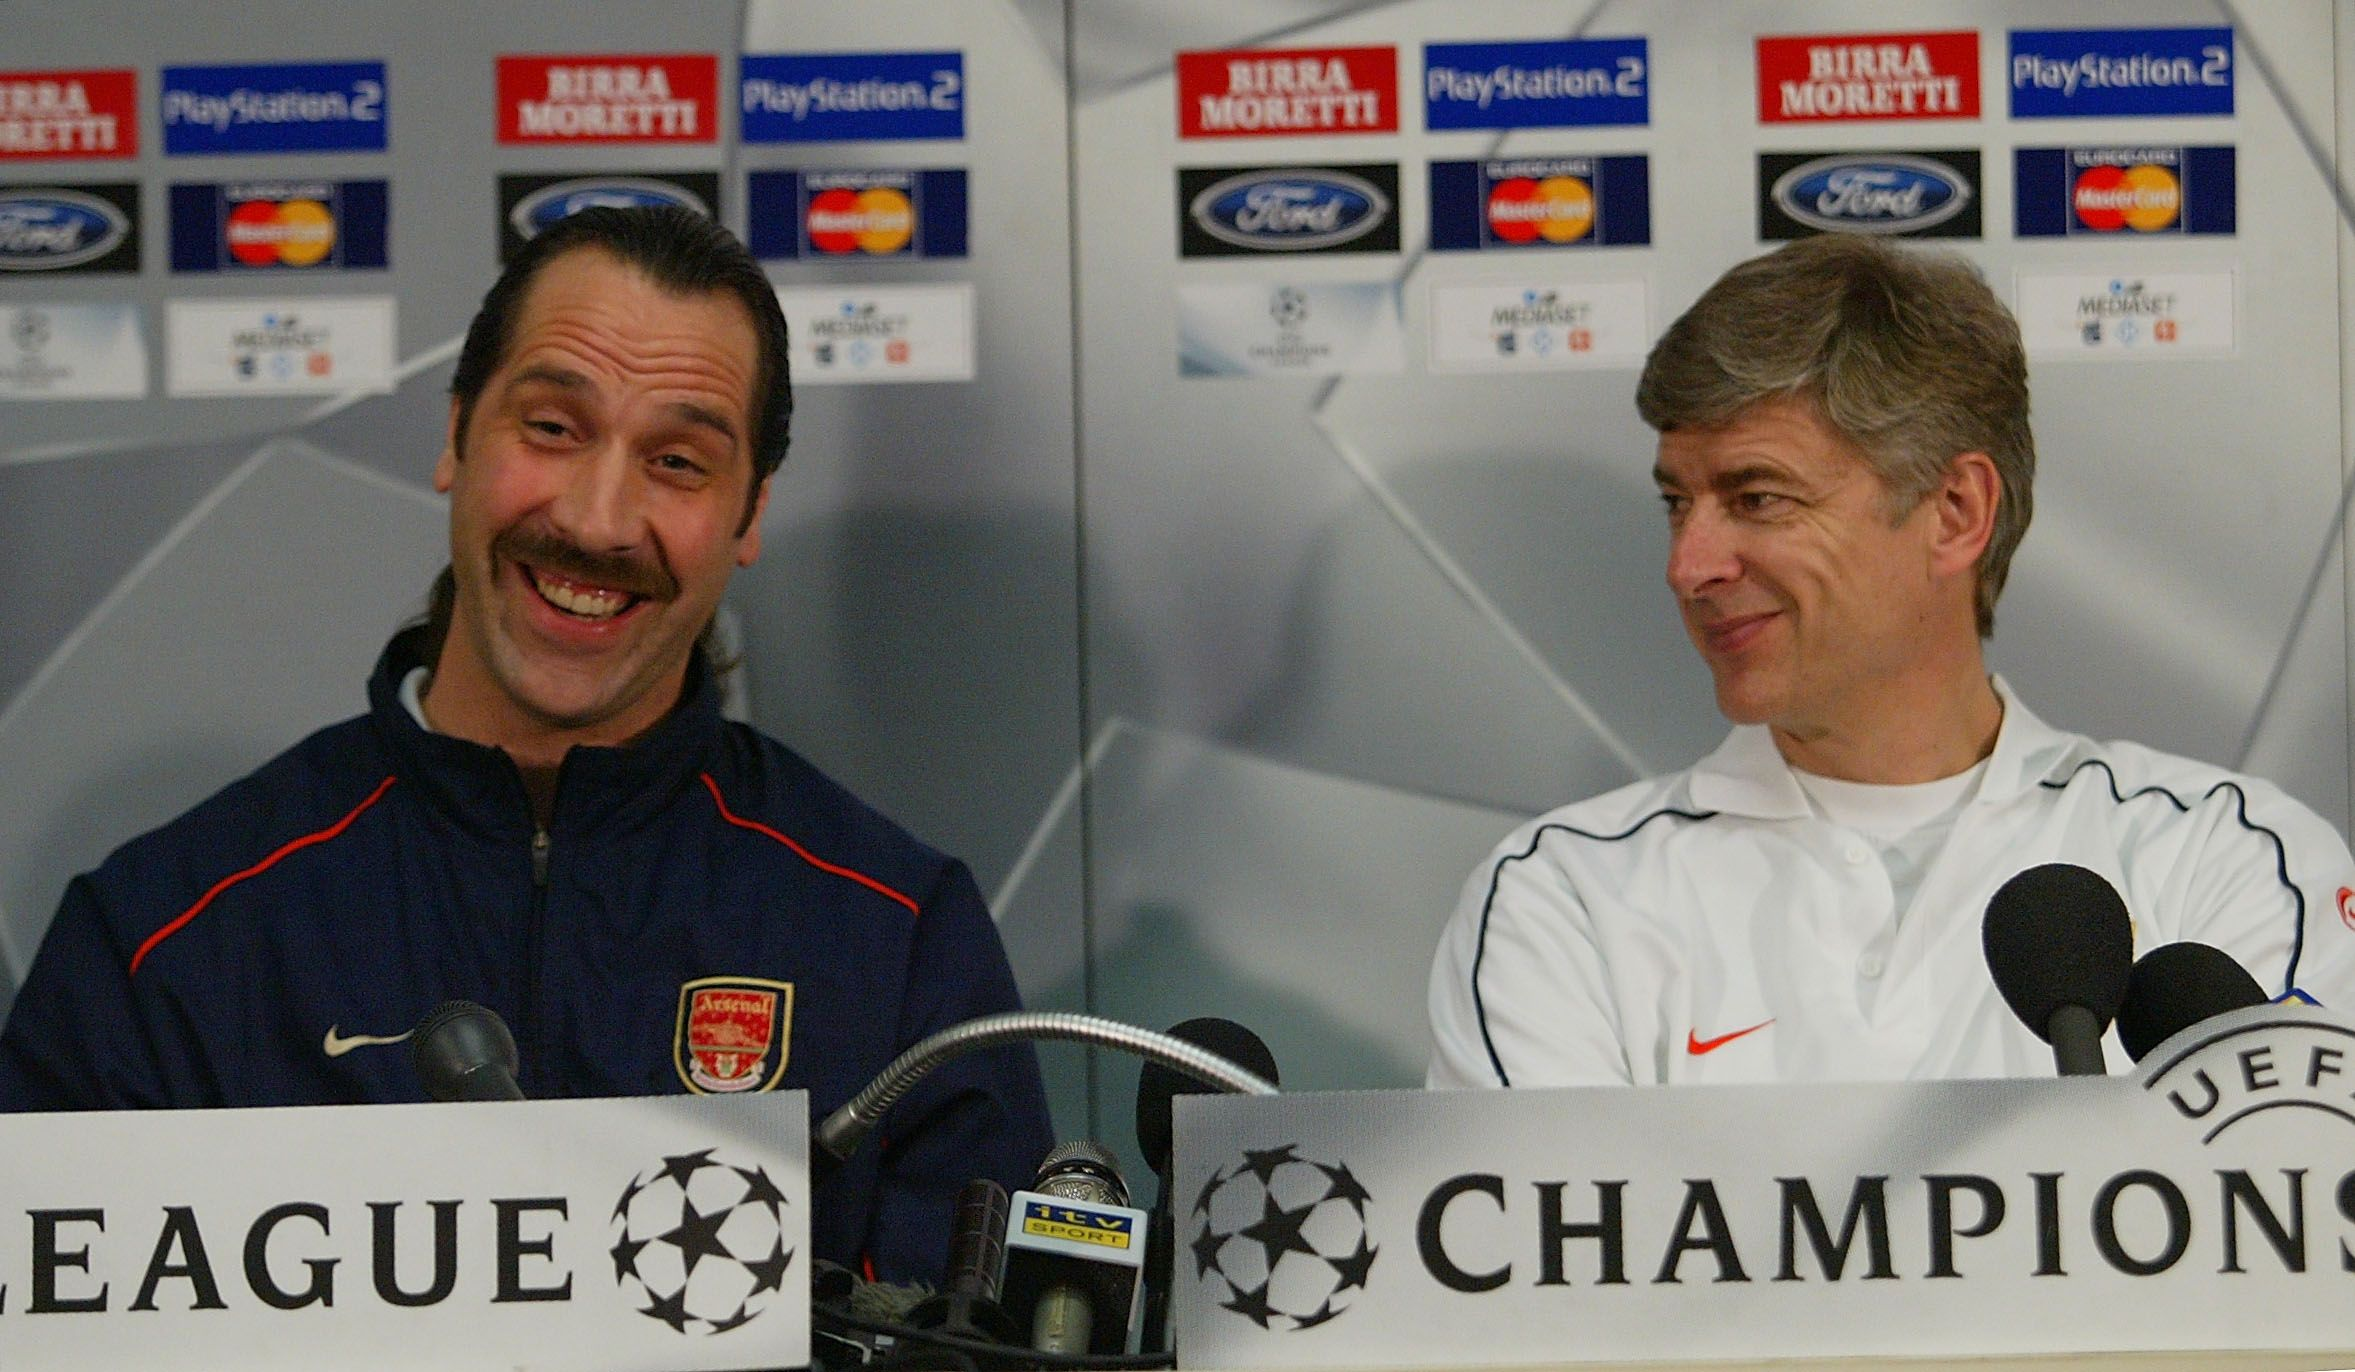 Seaman and Wenger